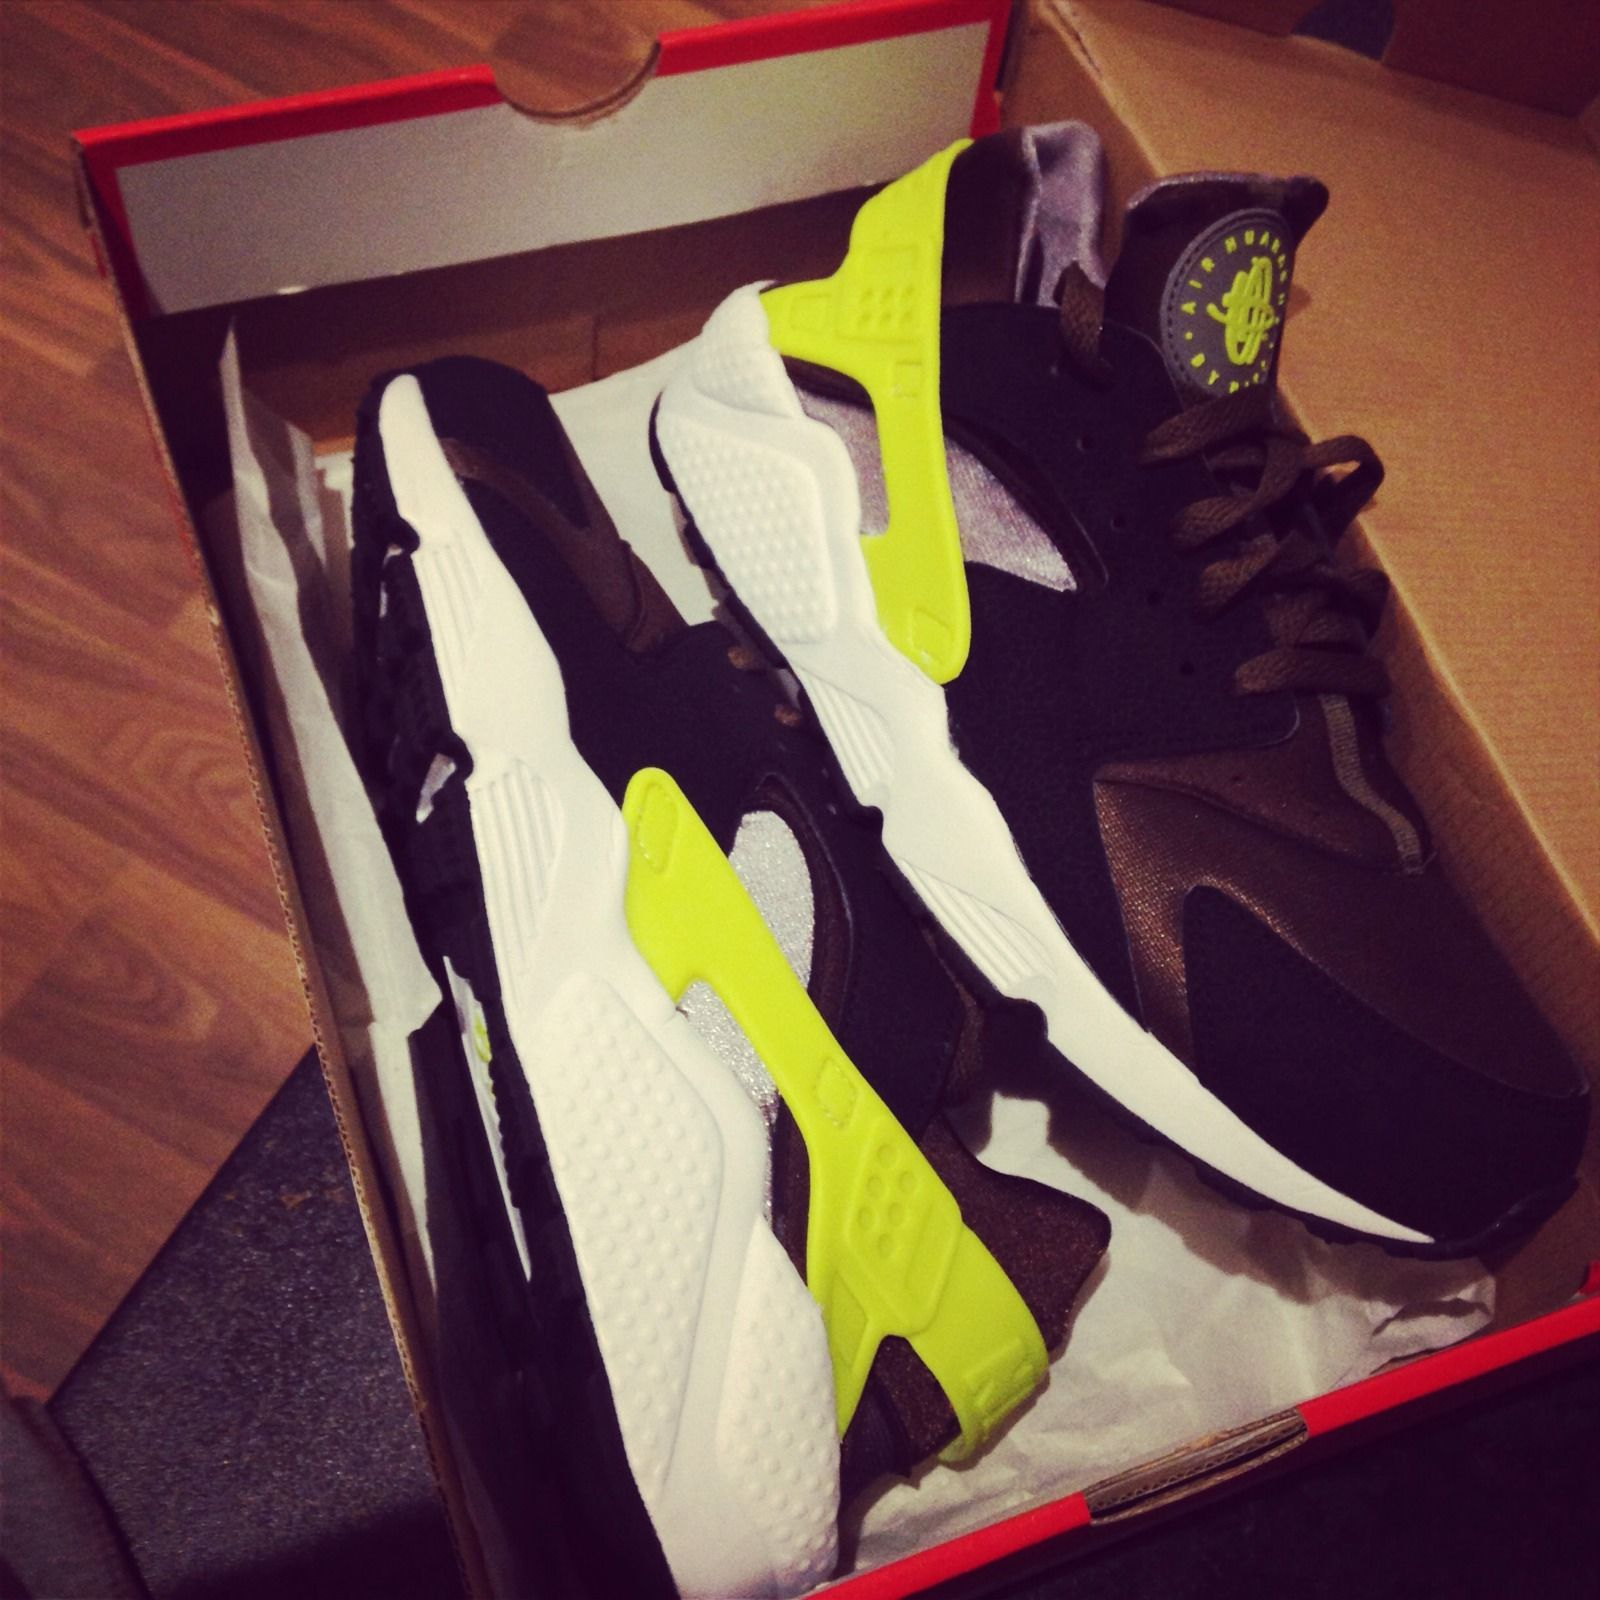 sports shoes c8046 10968 Fix Your Huarache Strap: How To Fix My Snapped Huarache Strap